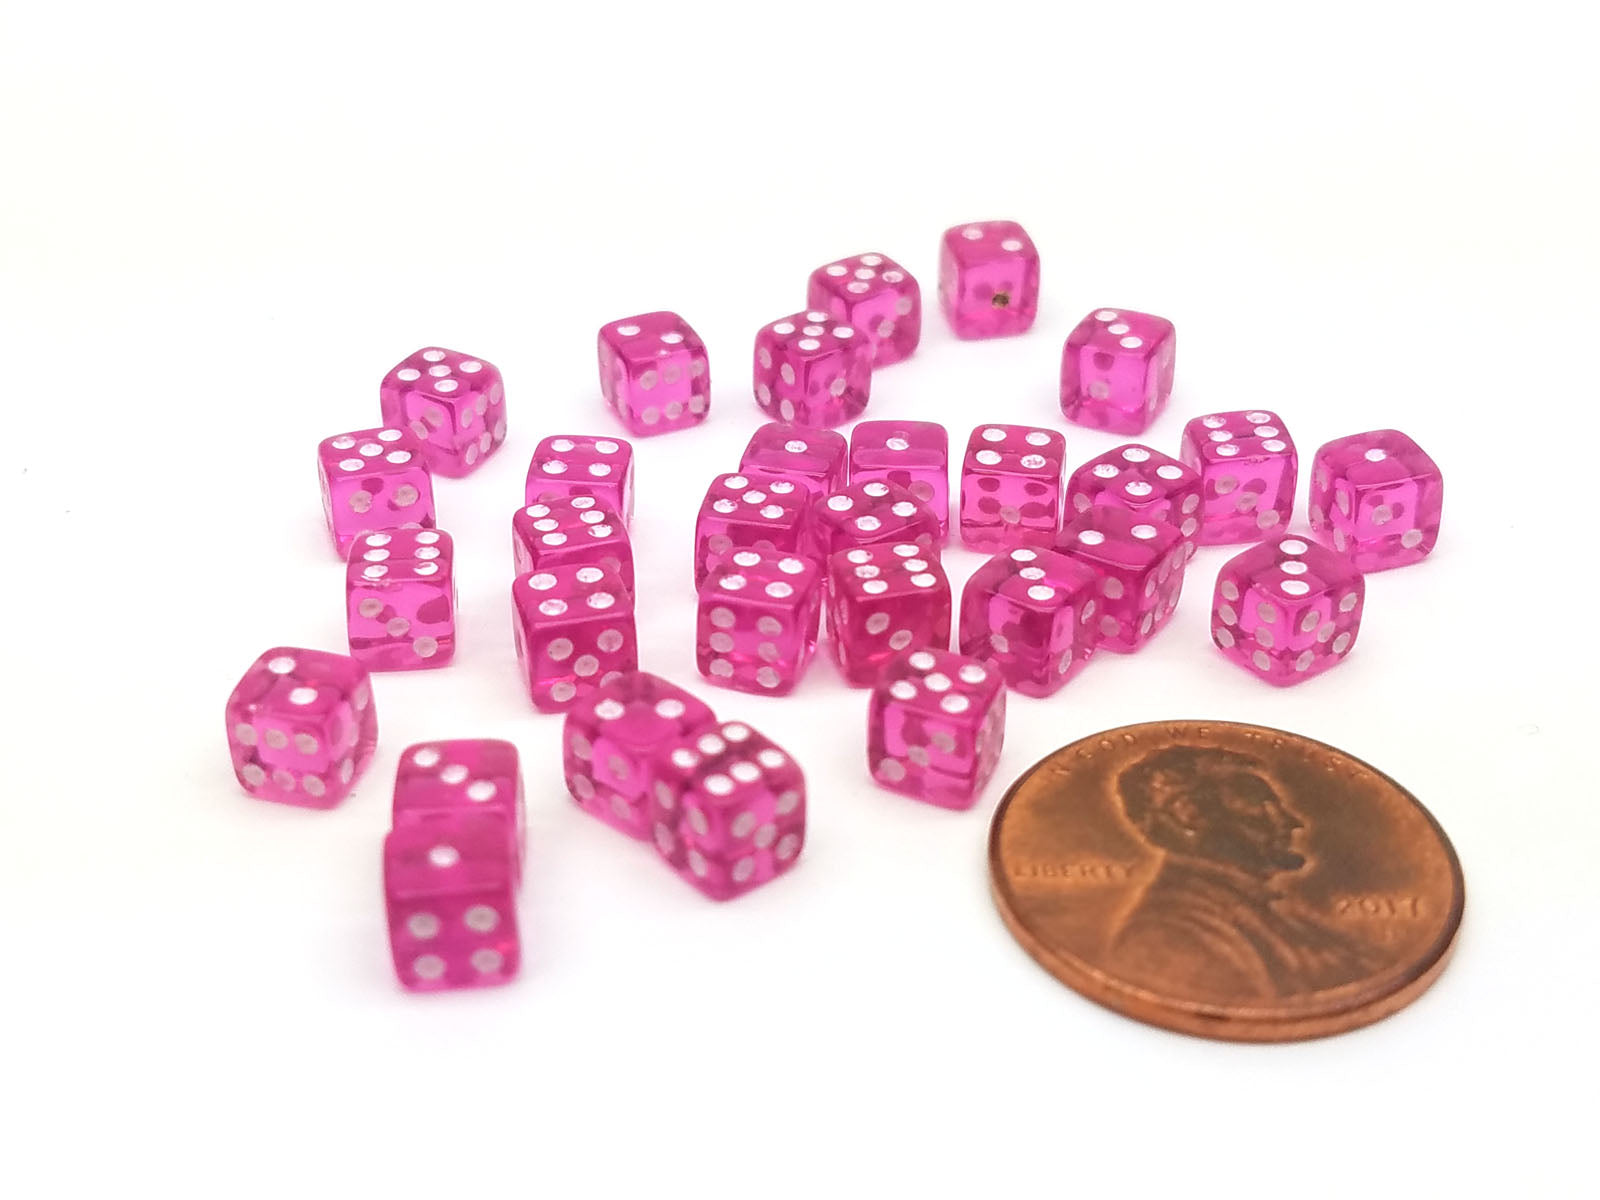 Set of 30 D6 5mm Transparent Rounded Corner Dice - Purple with White Pips